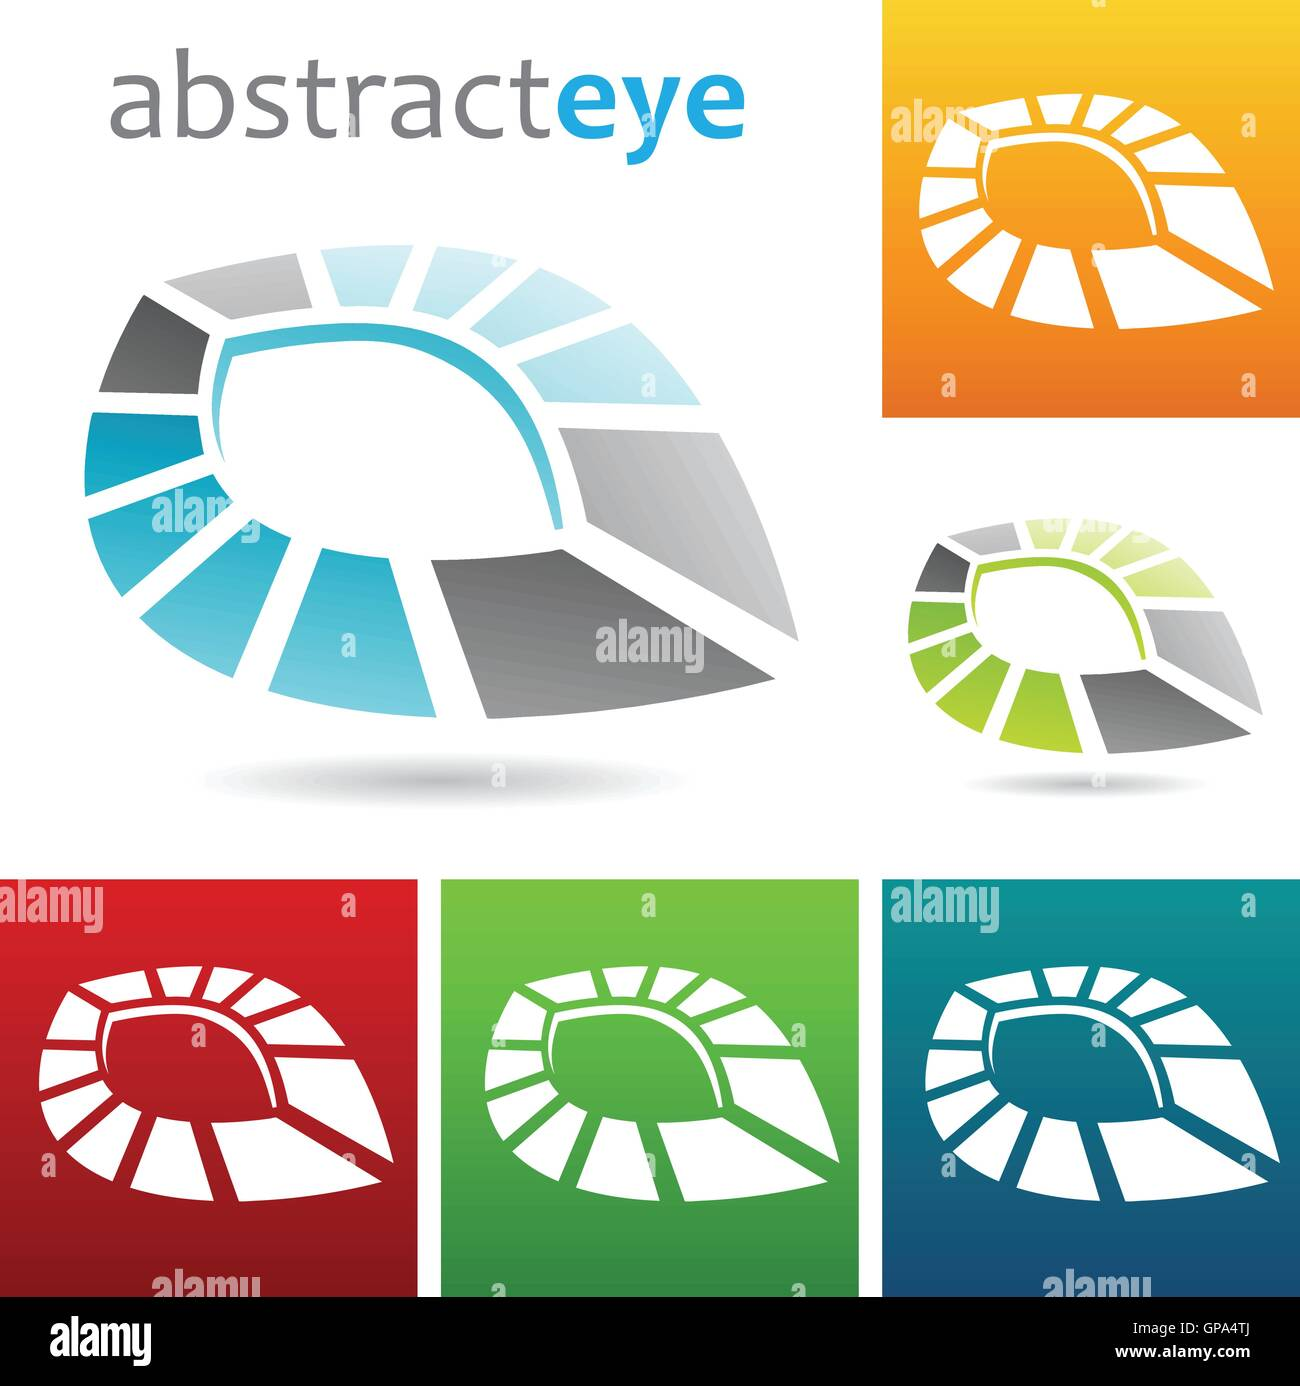 hight resolution of vector illustration of geometric abstract eye shape